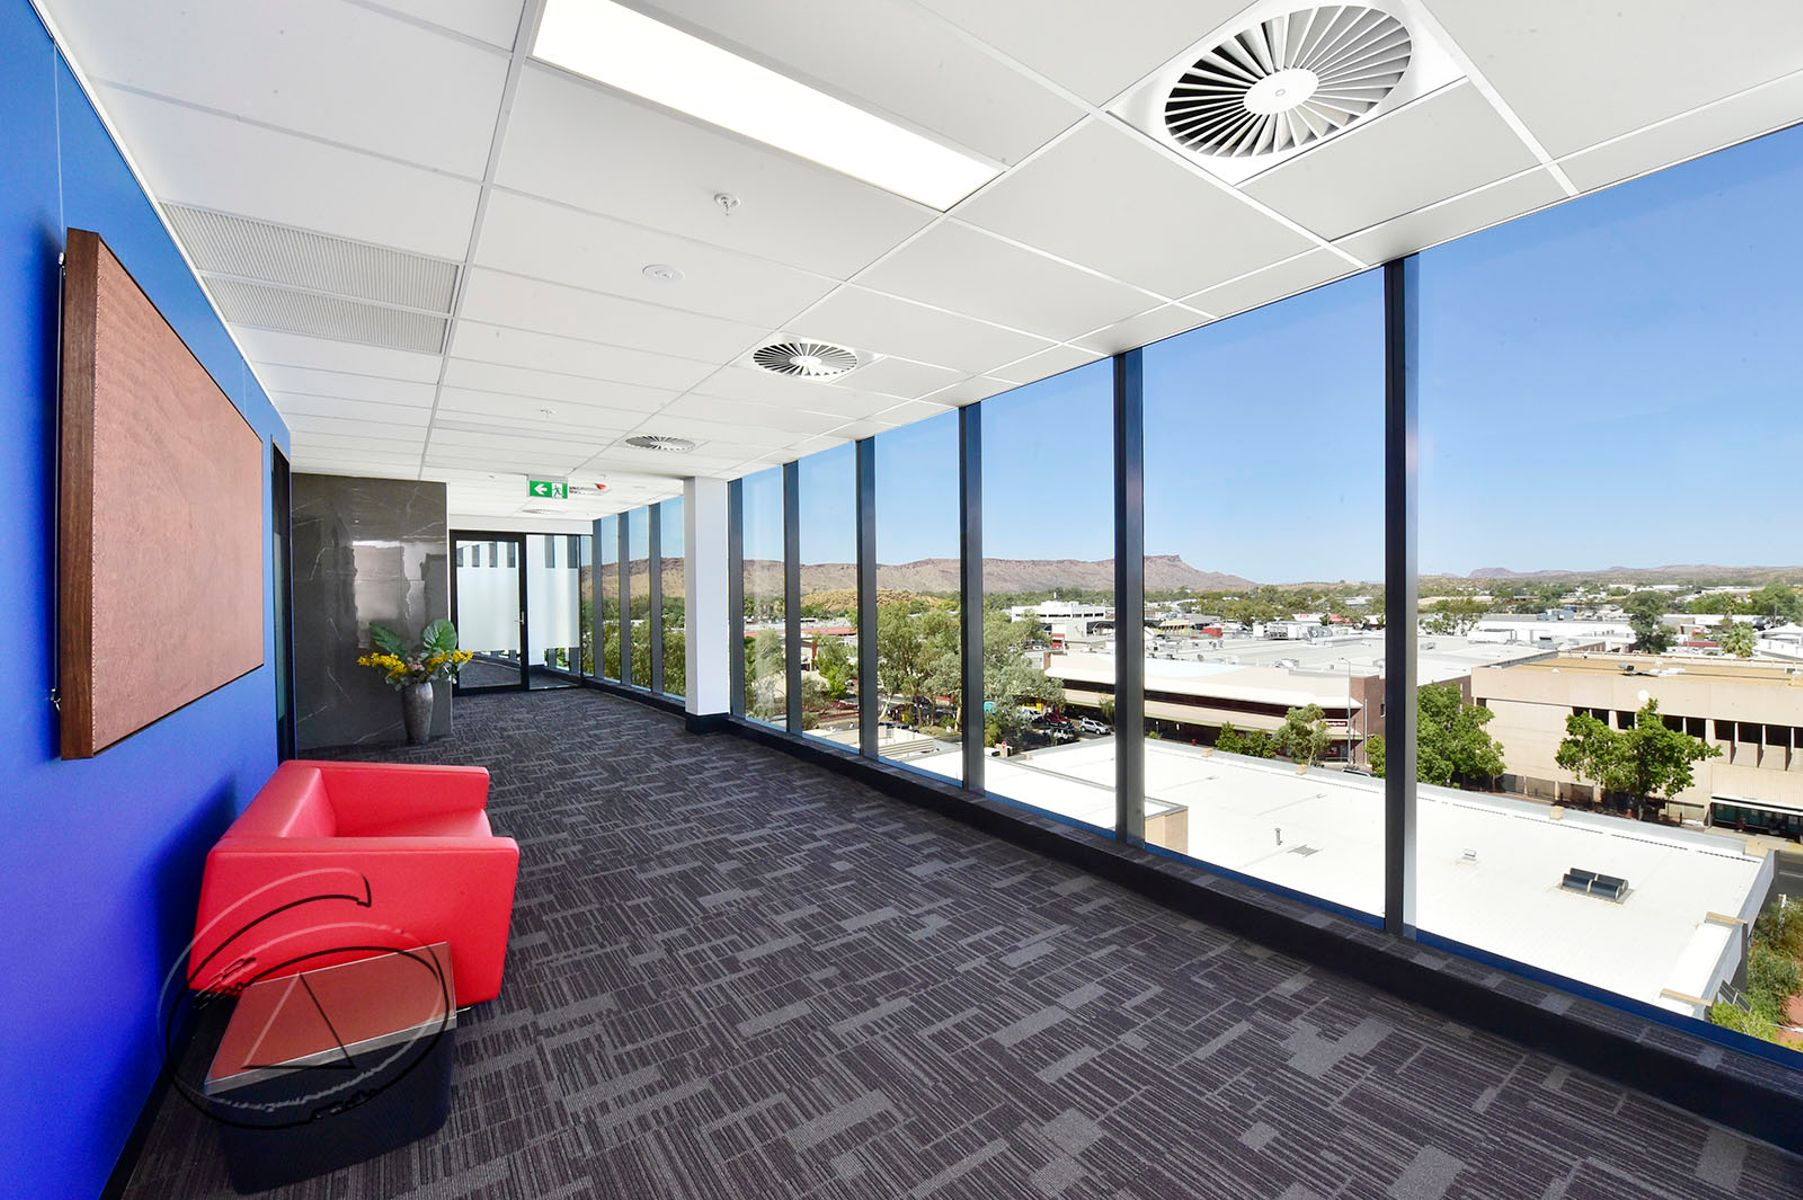 Offices 5/14 Parsons Street, Alice Springs, NT 0870